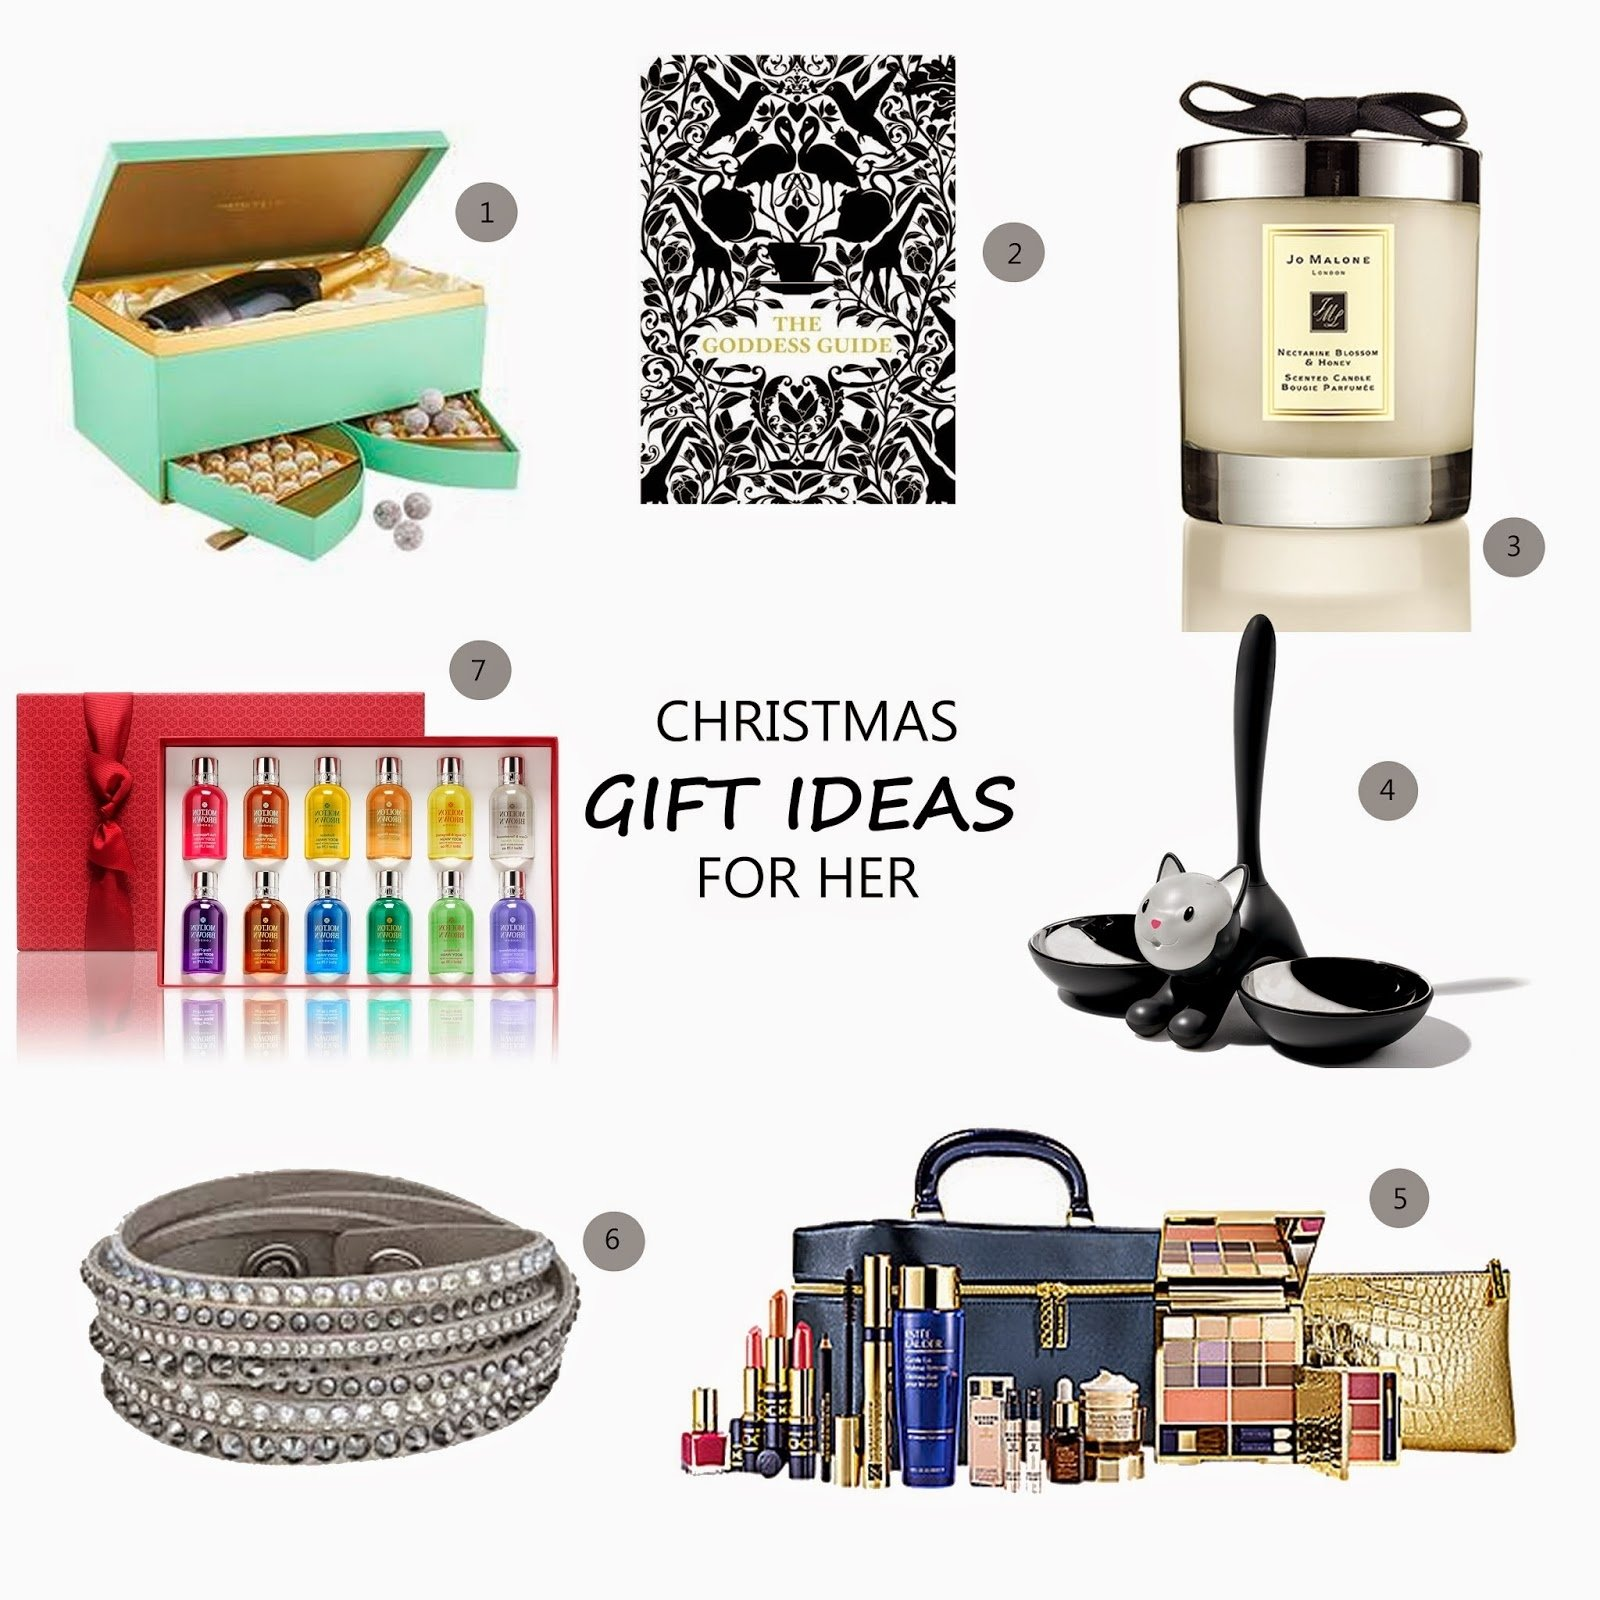 10 Pretty Xmas Gift Ideas For Her 7 christmas gift ideas for her lovedlaura 1 2020